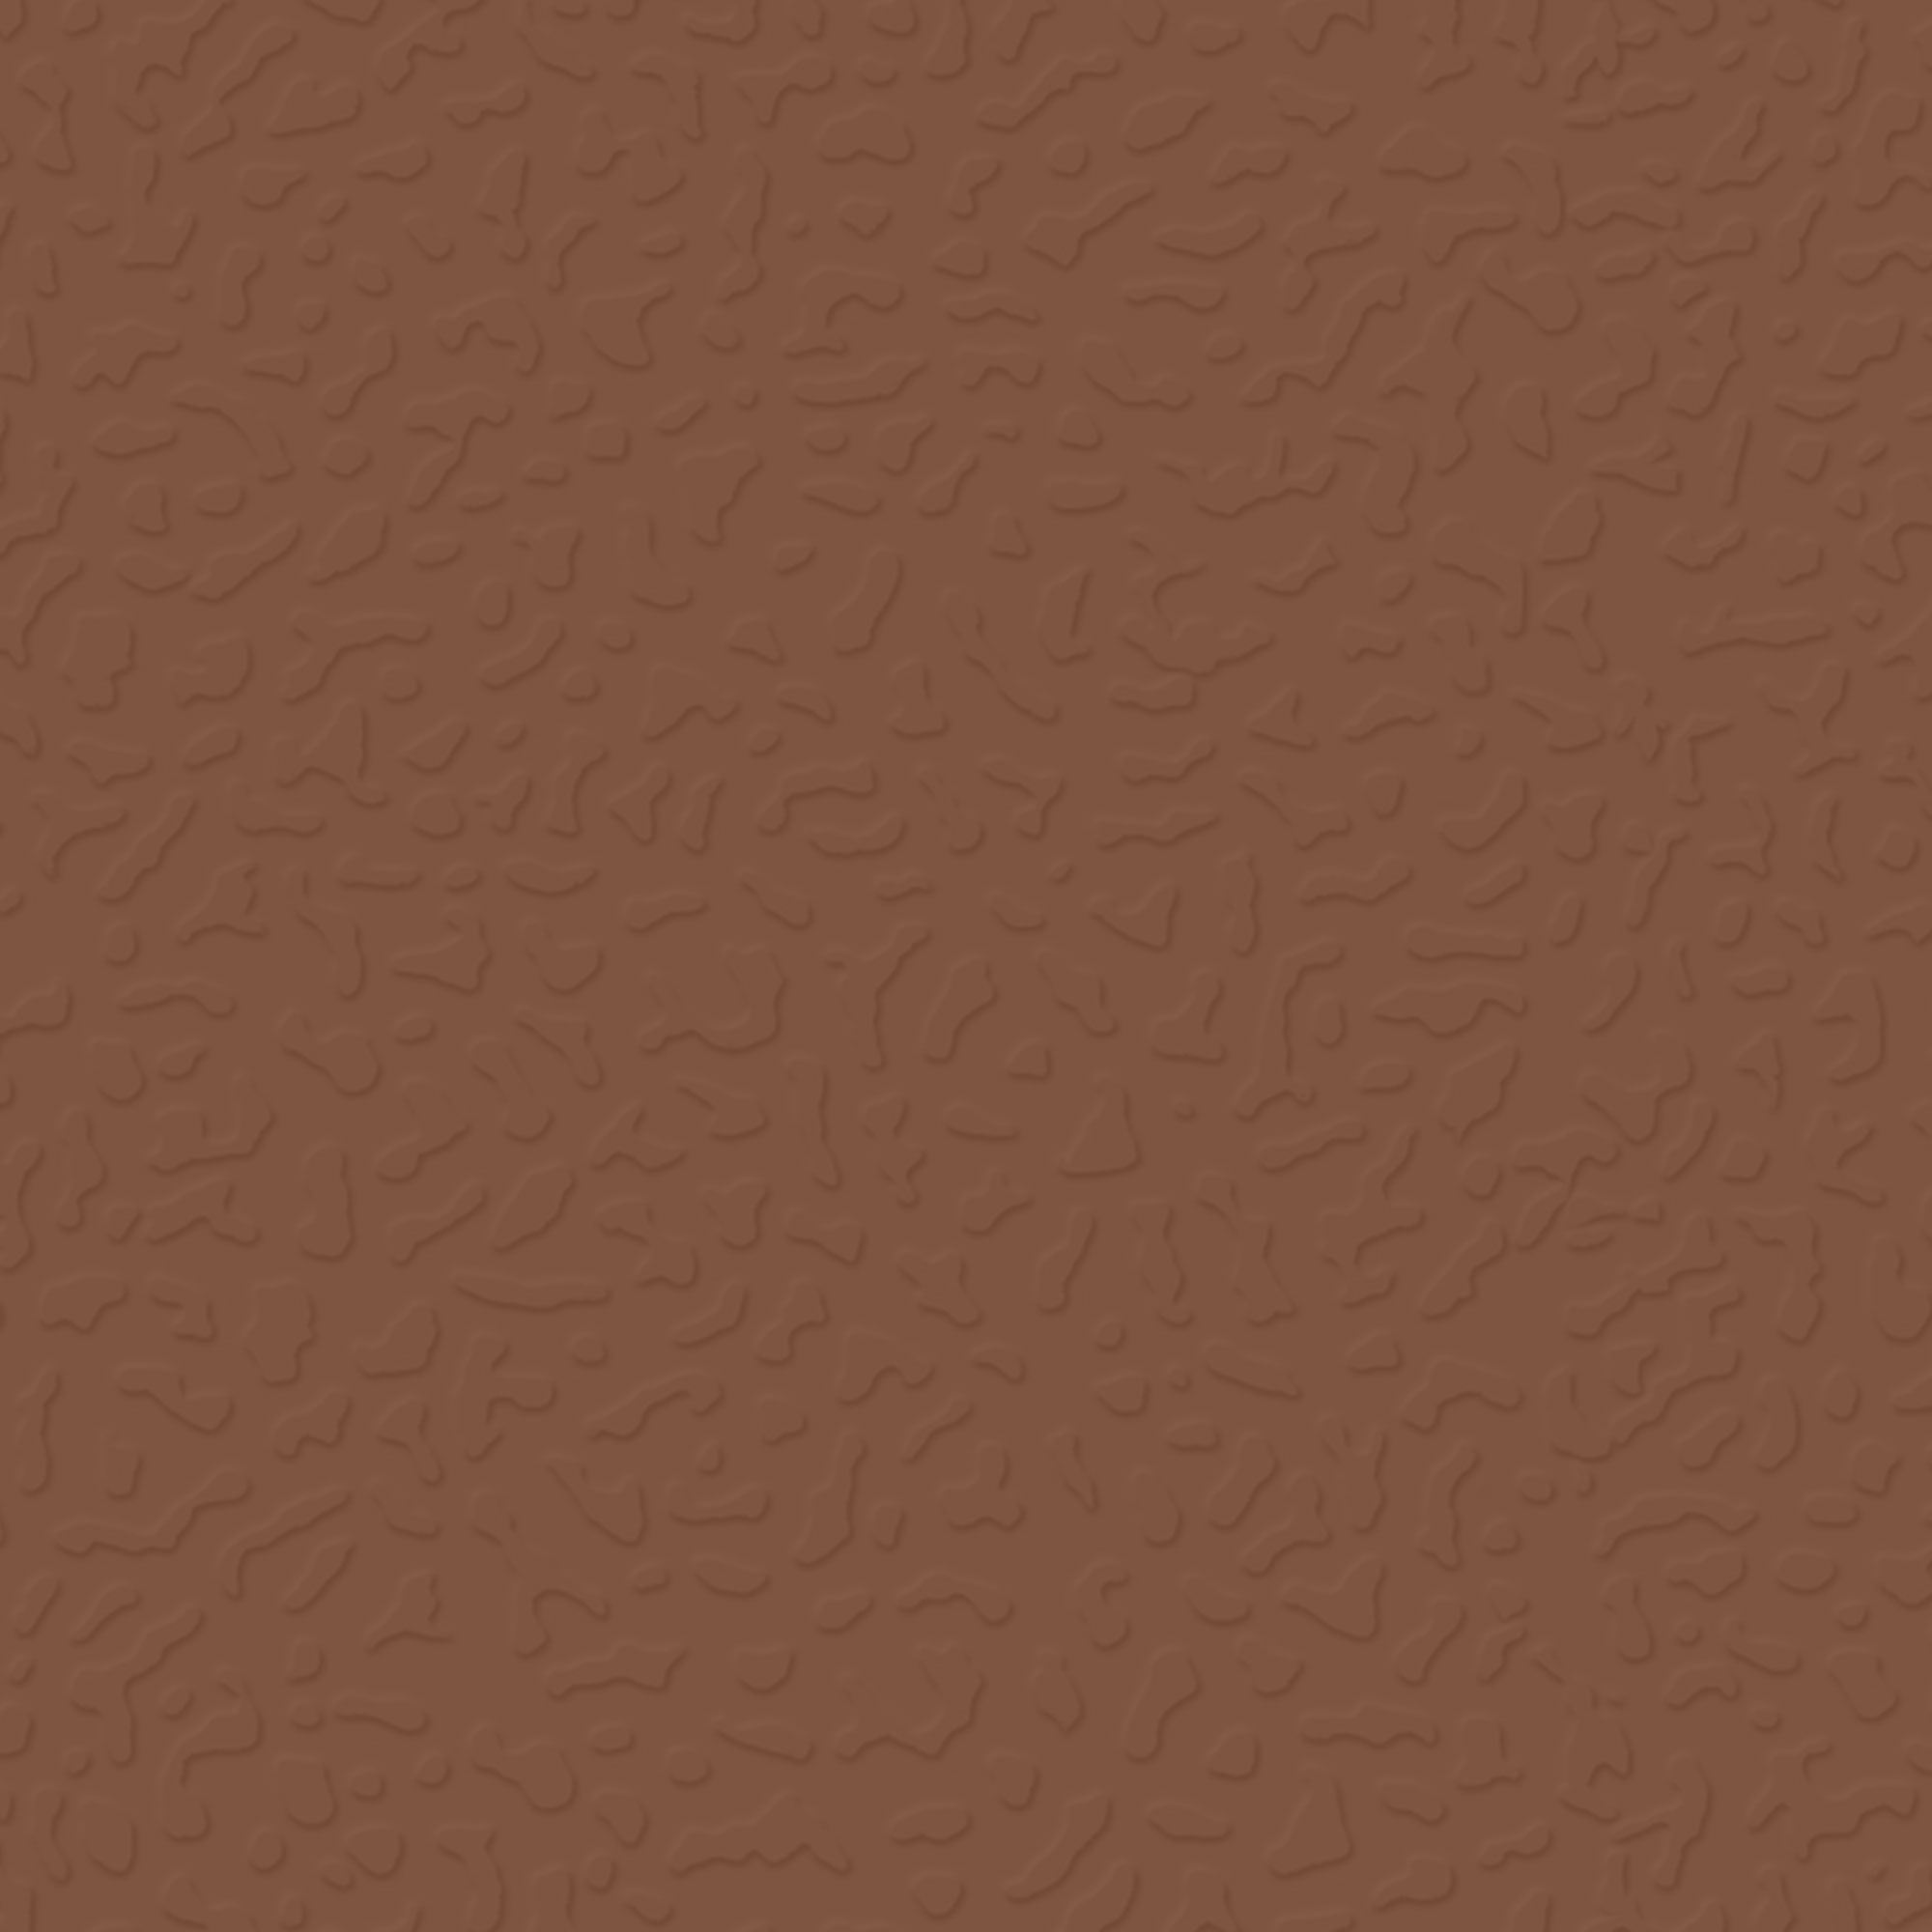 Roppe Rubber Tile 900 - Textured Design (993) Nutmeg LB996623